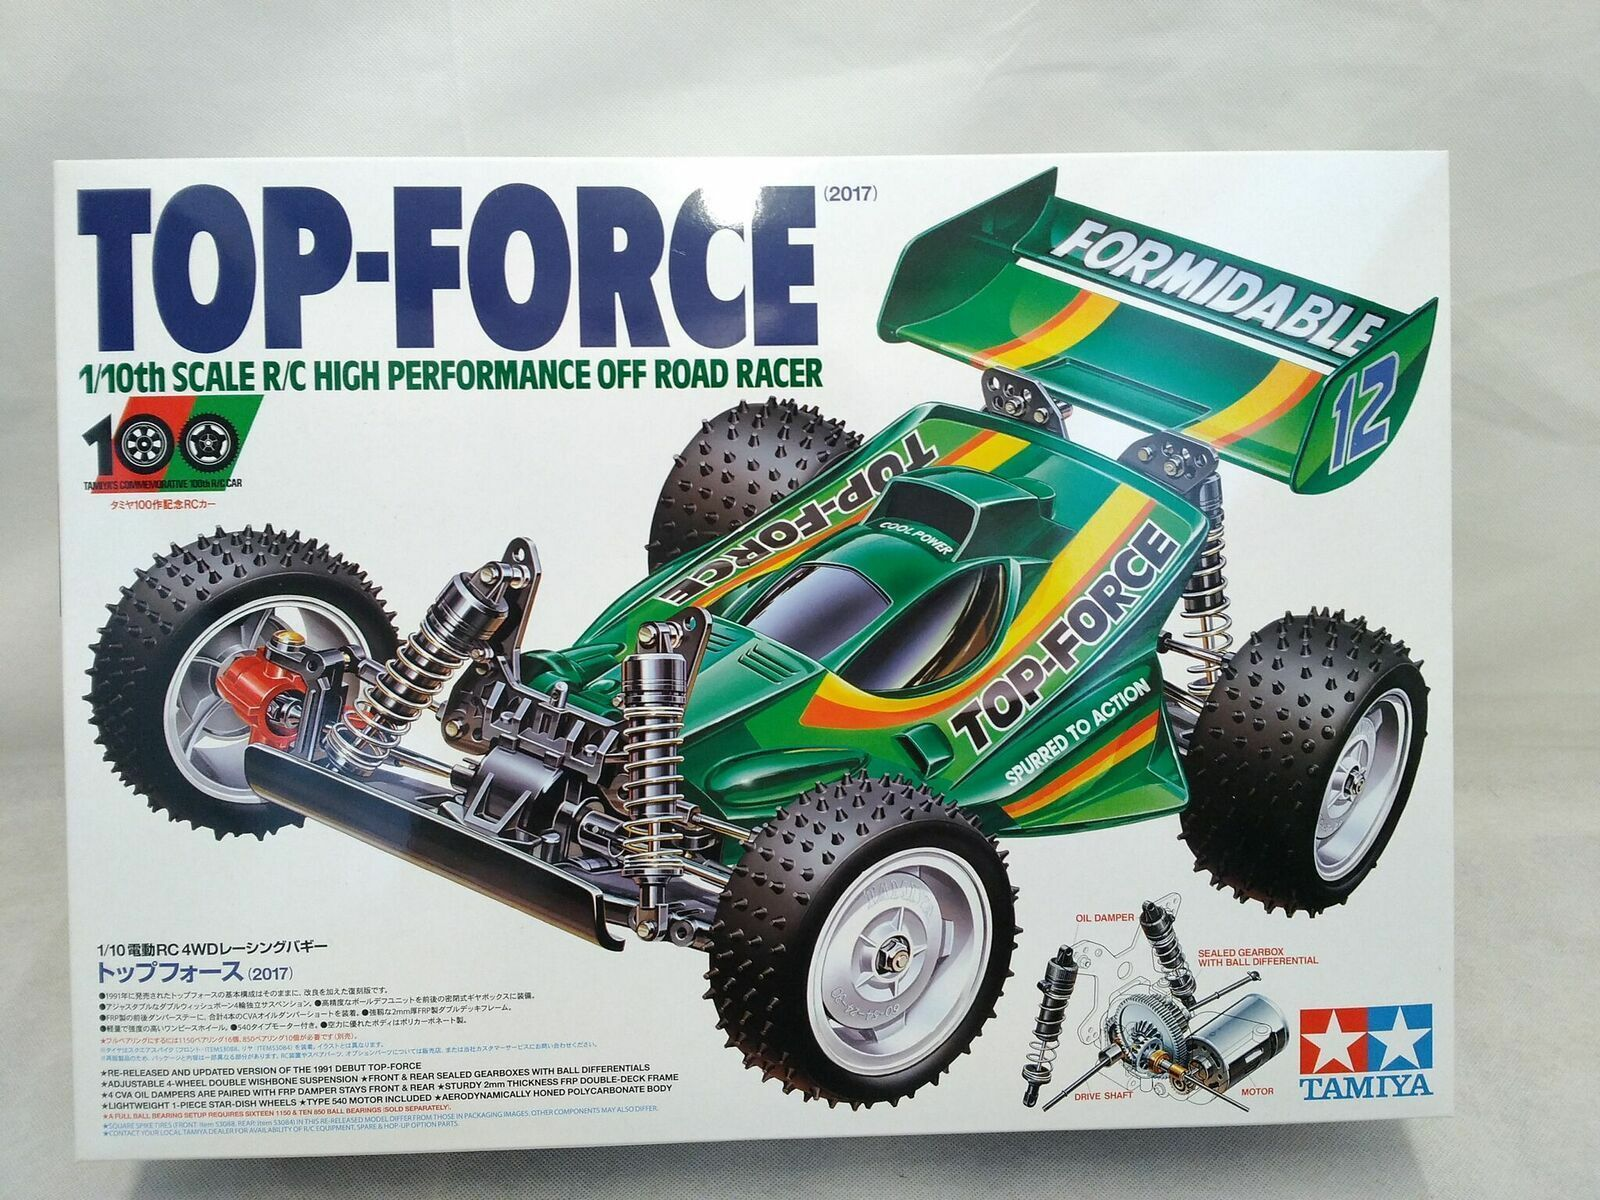 TAMIYA 1 10 R C High Performance Off Road Racer TOP-FORCE 2017 No.47350